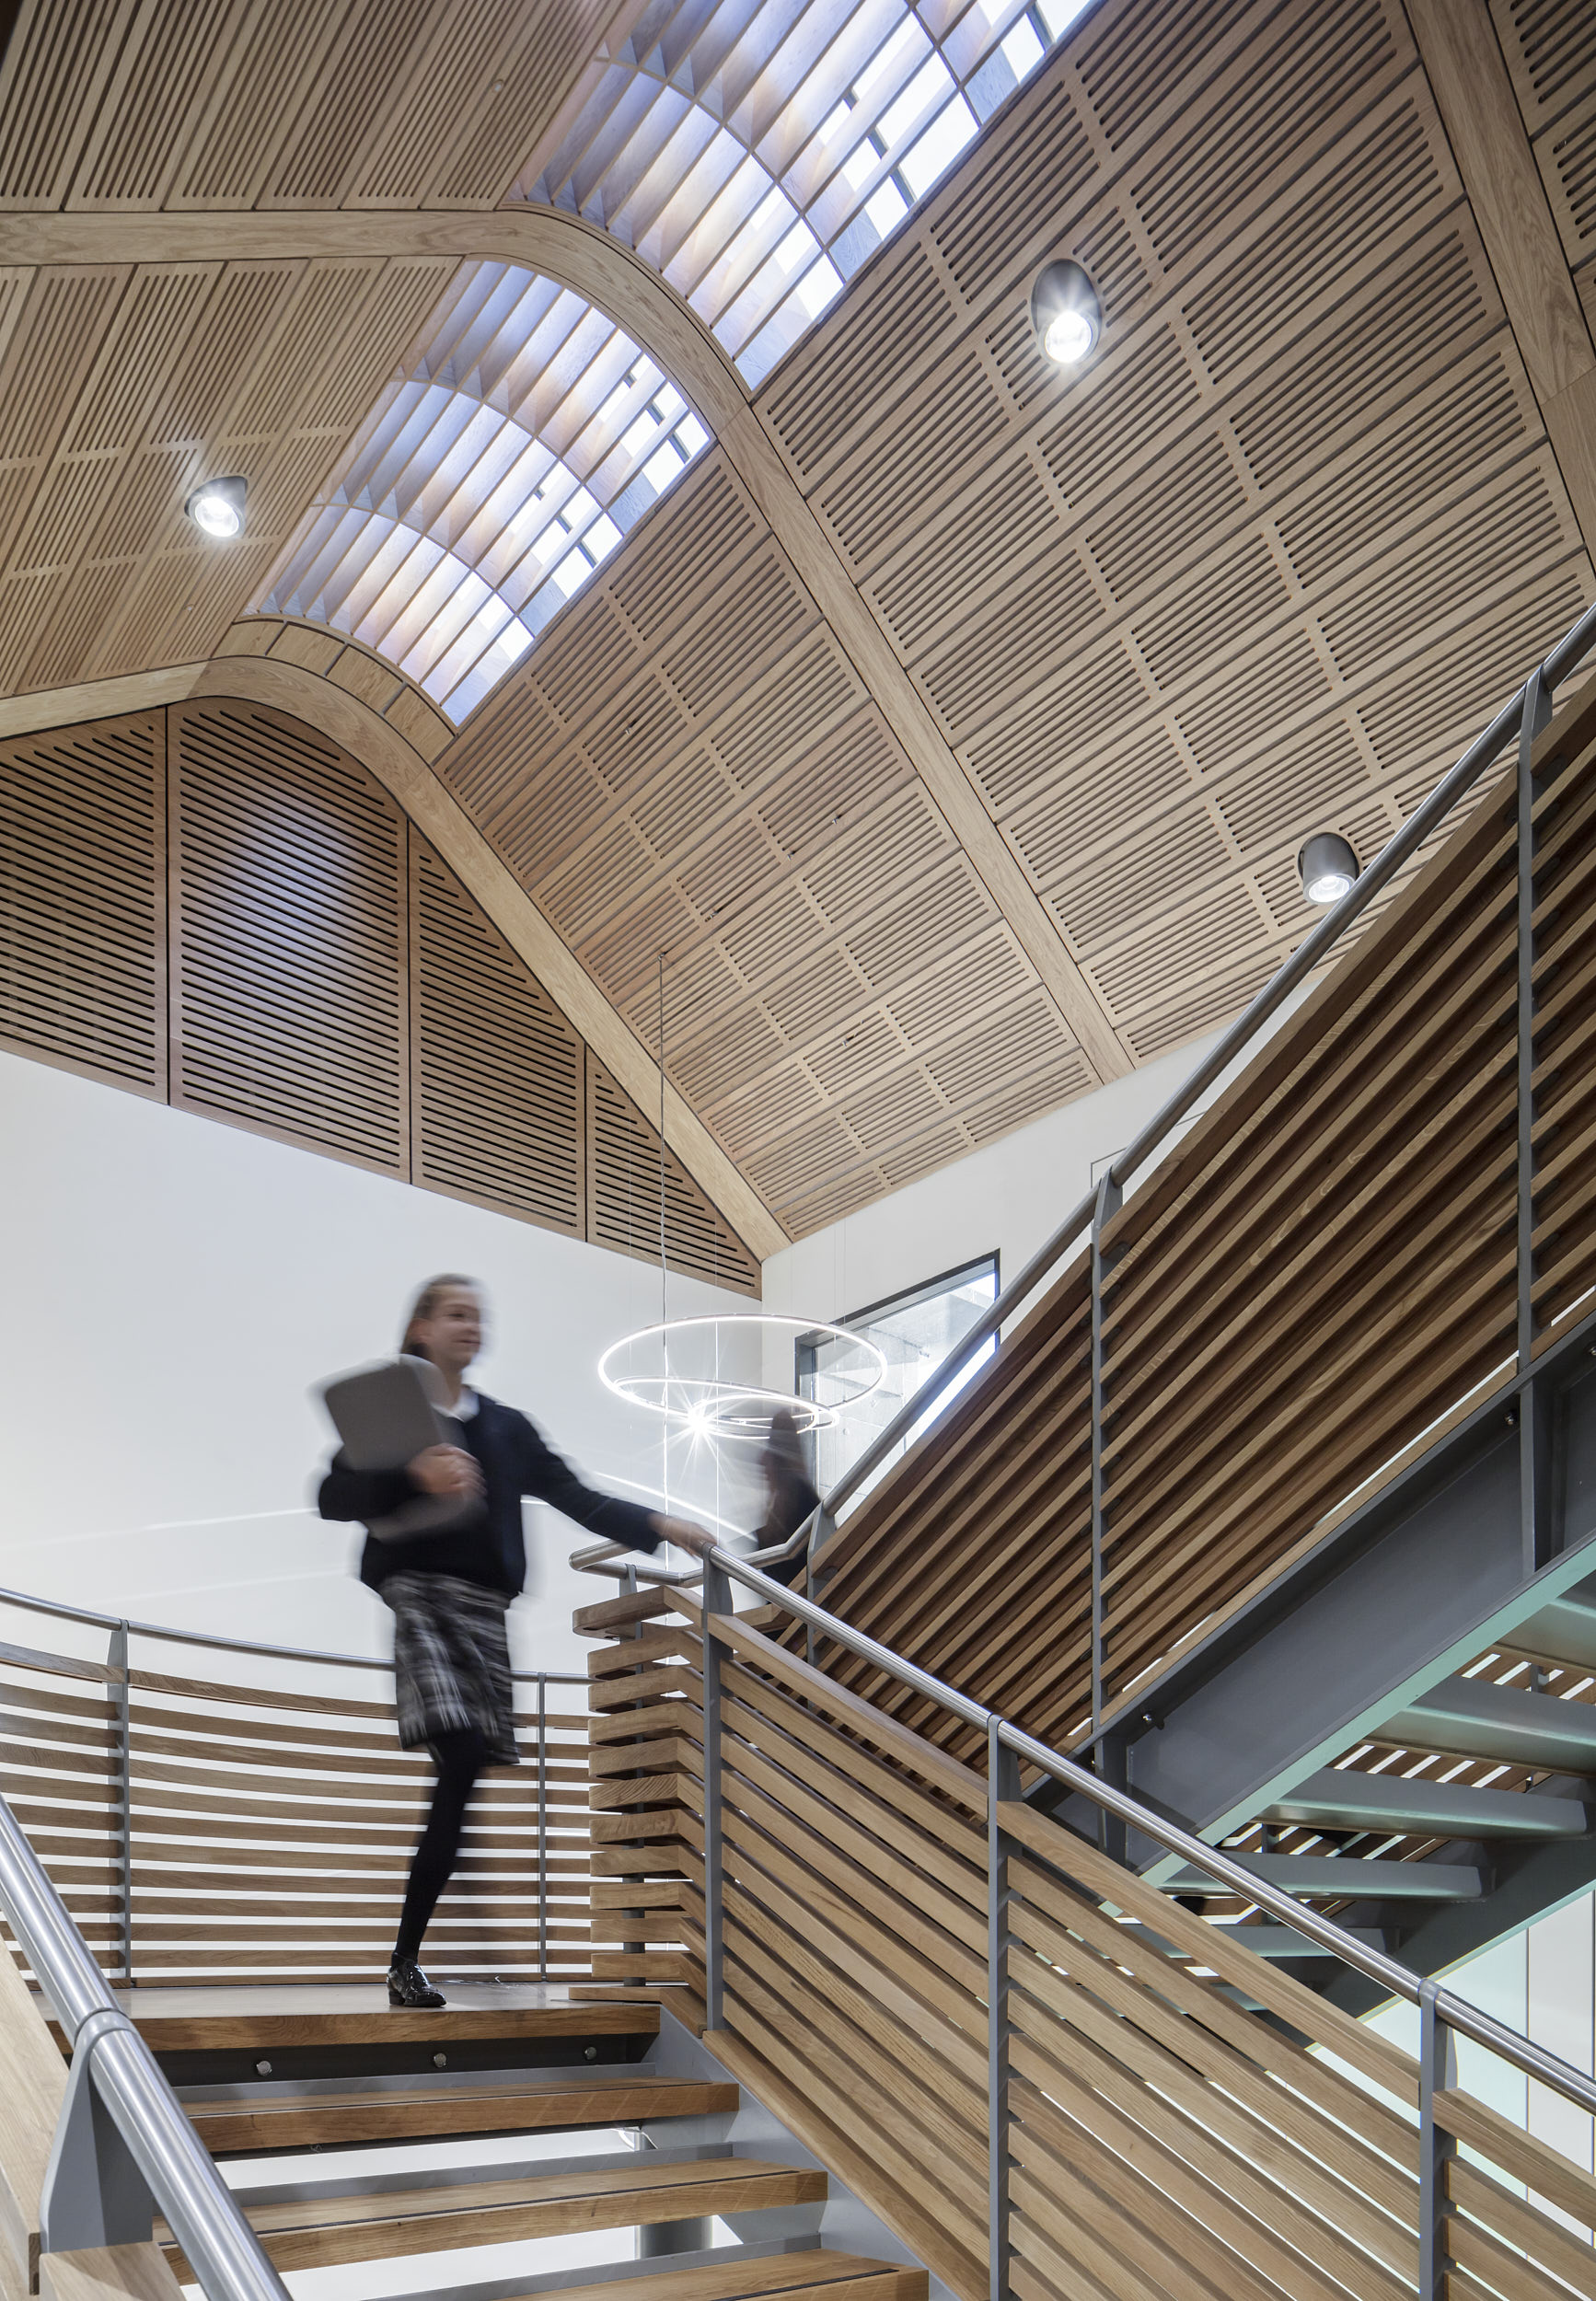 The stunning feature stair is the central pivot of the architecture.